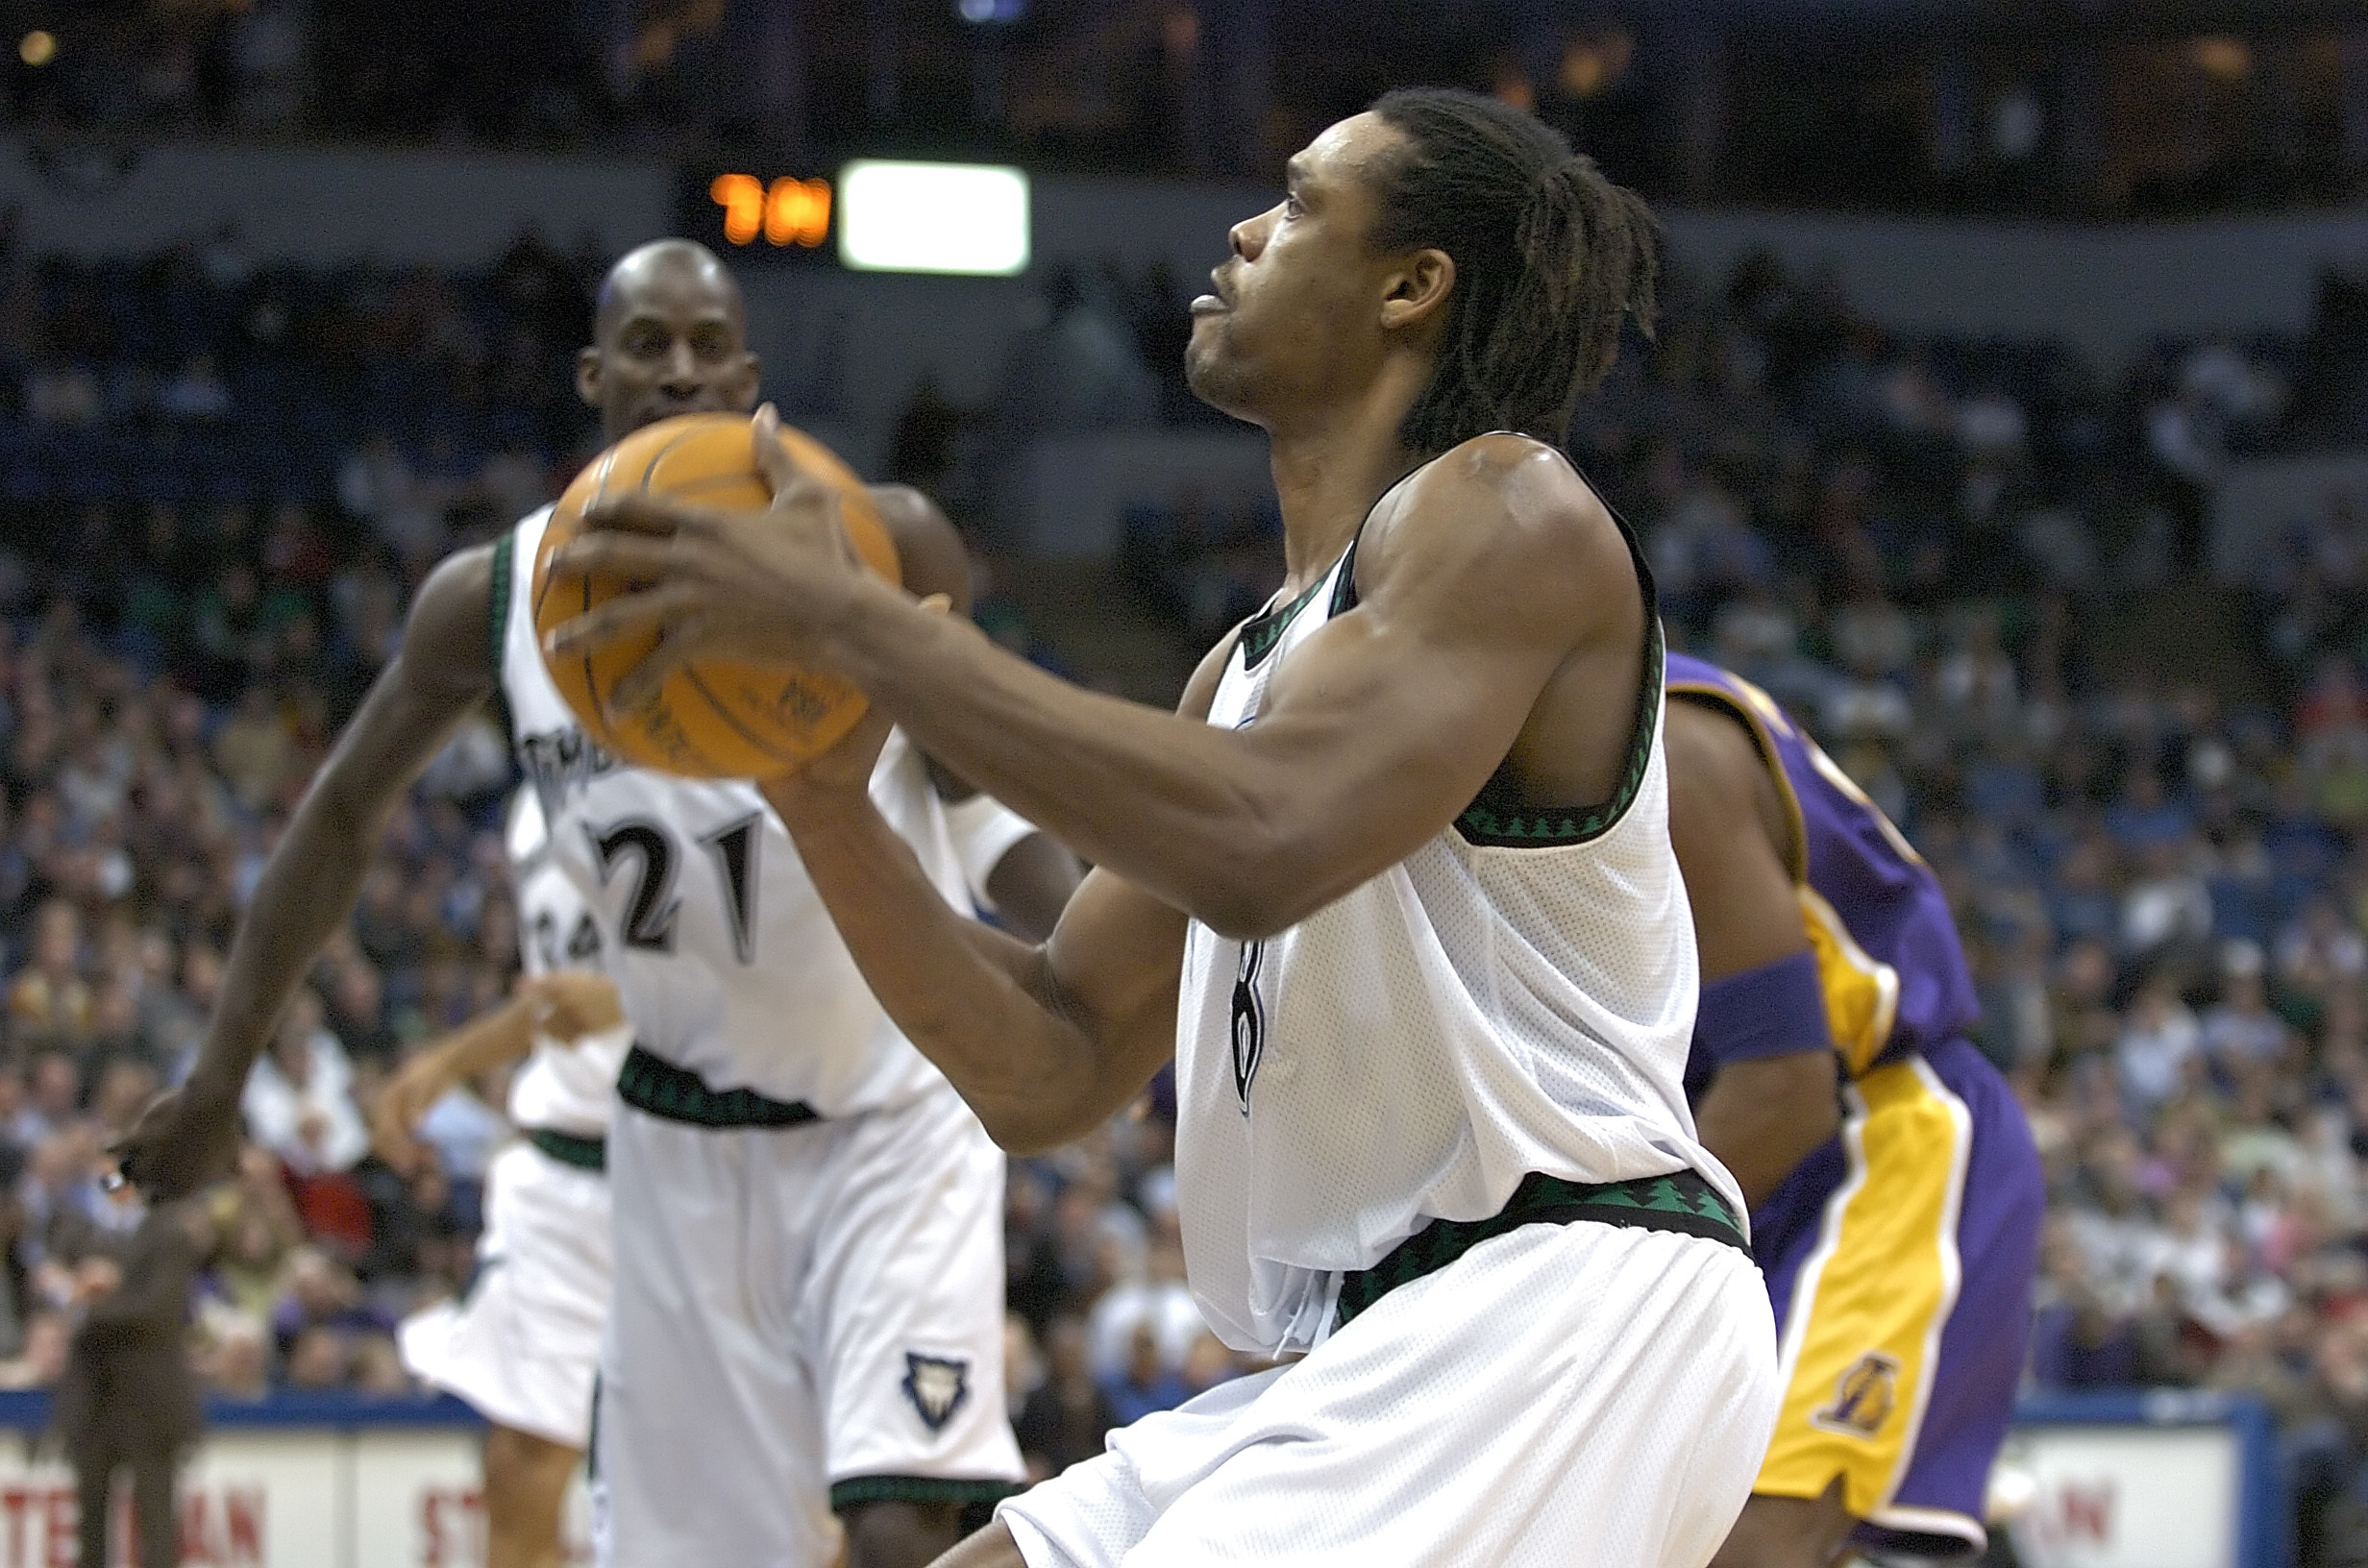 Latrell Sprewell appears to have posted a GoFundMe page that was quickly removed